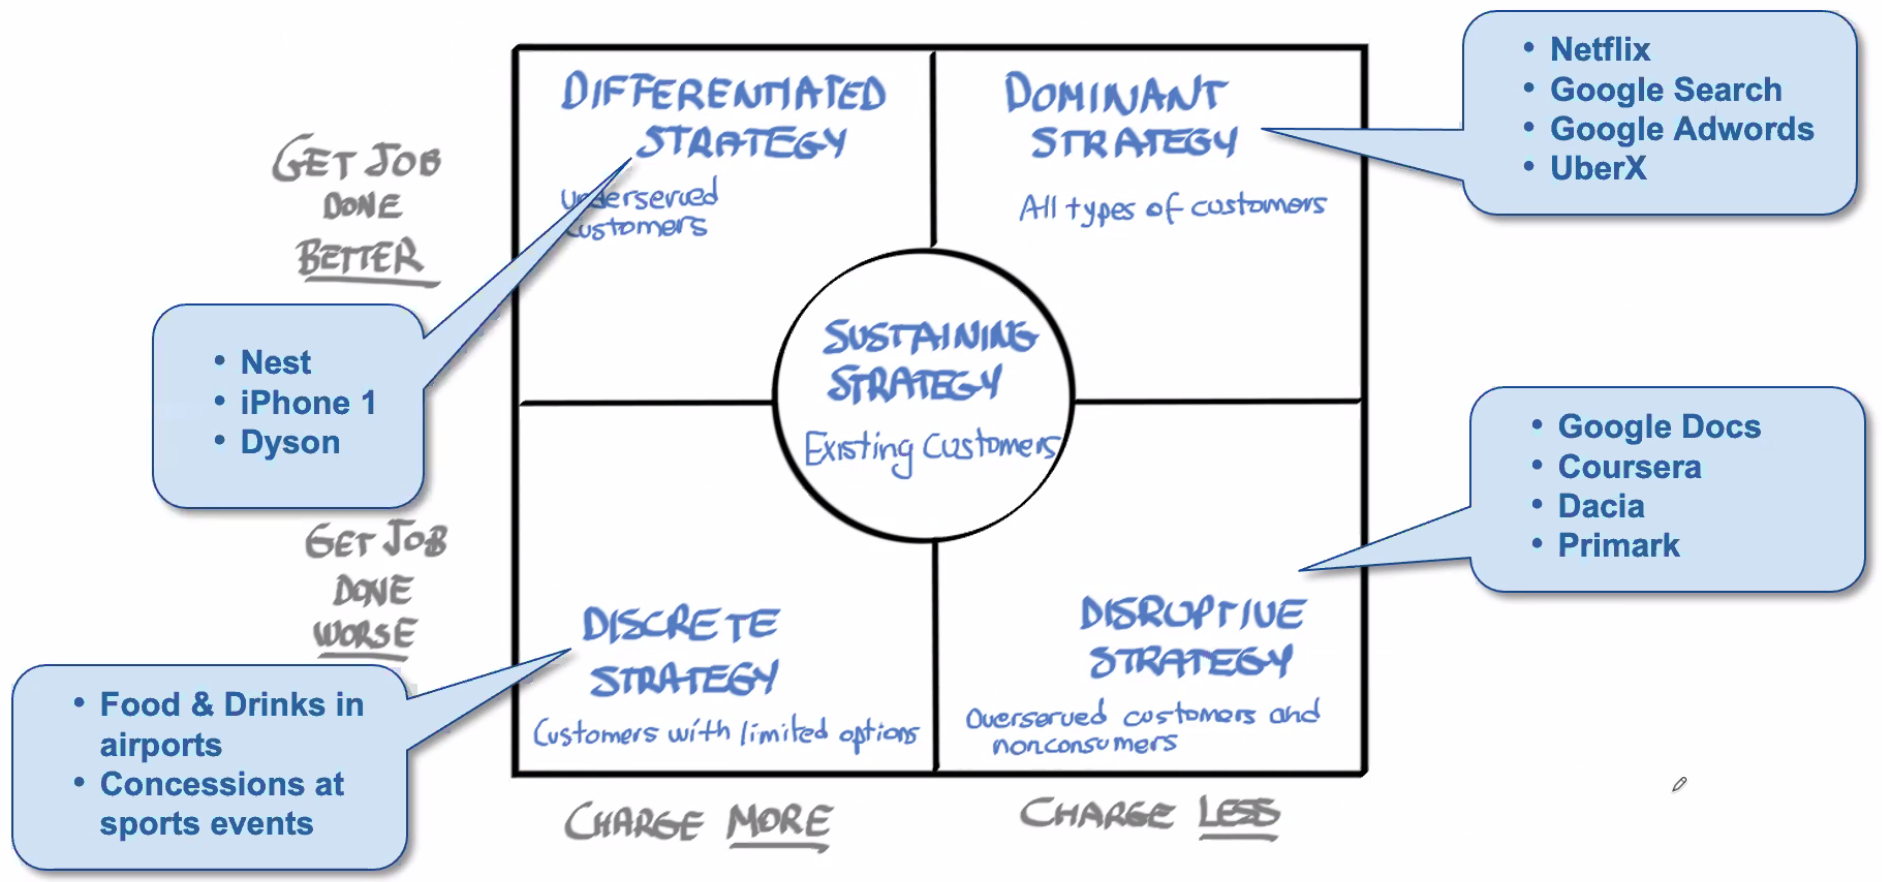 The Market Strategy Matrix